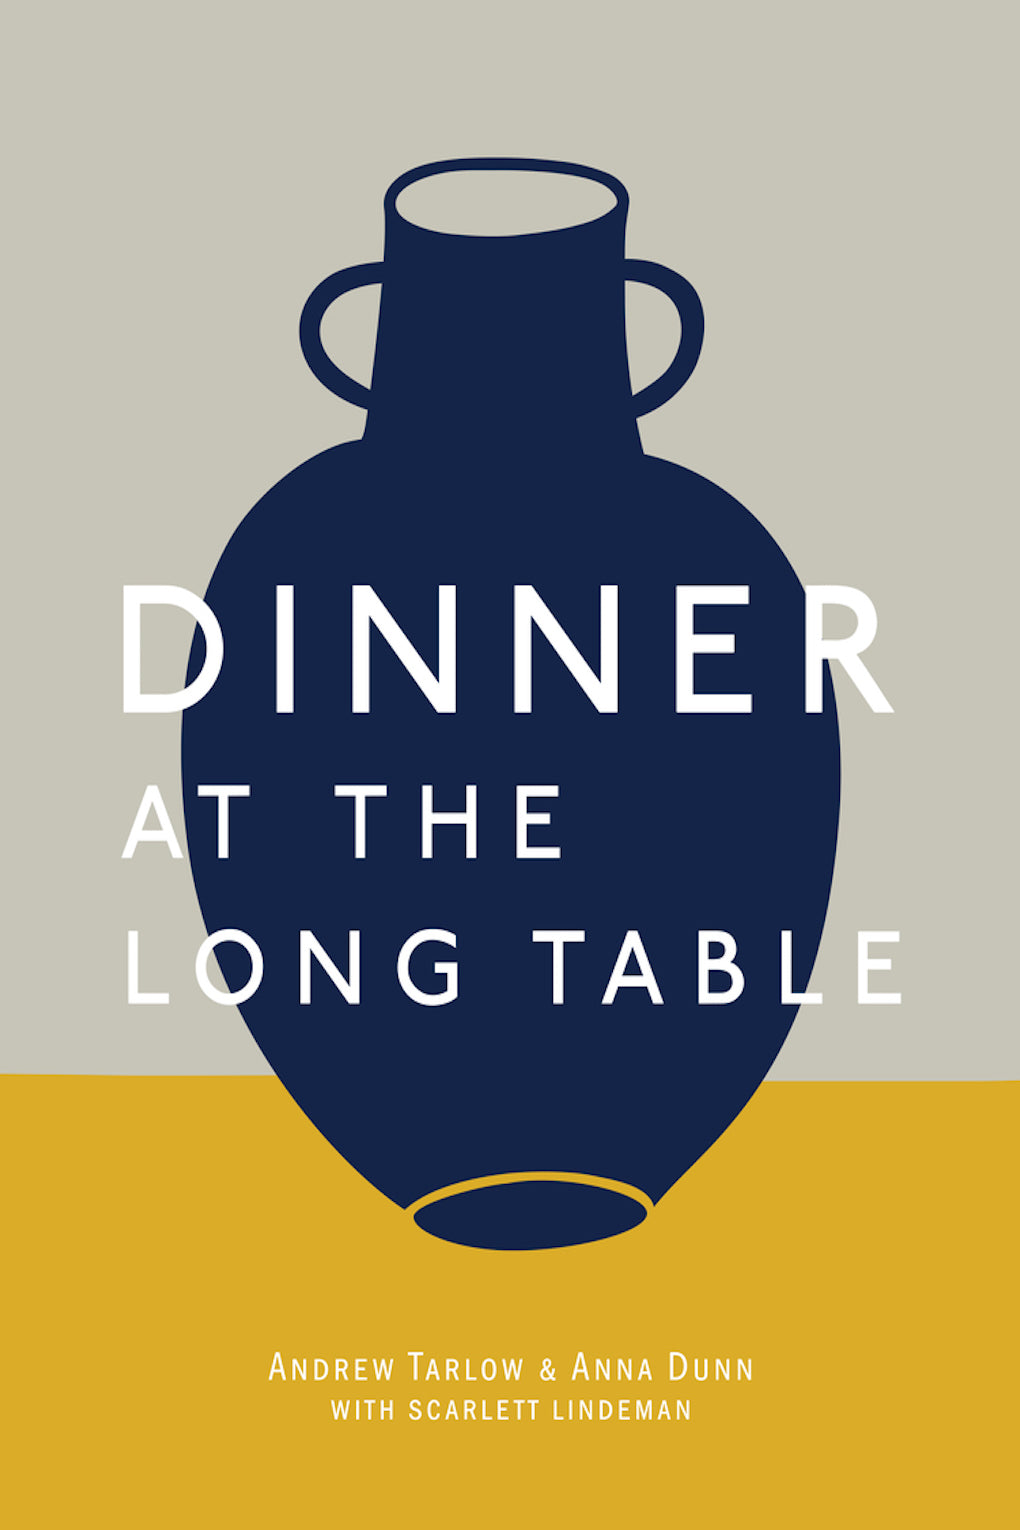 Dinner at the Long Table Cookbook-Andrew Tarlow Anna Dunn